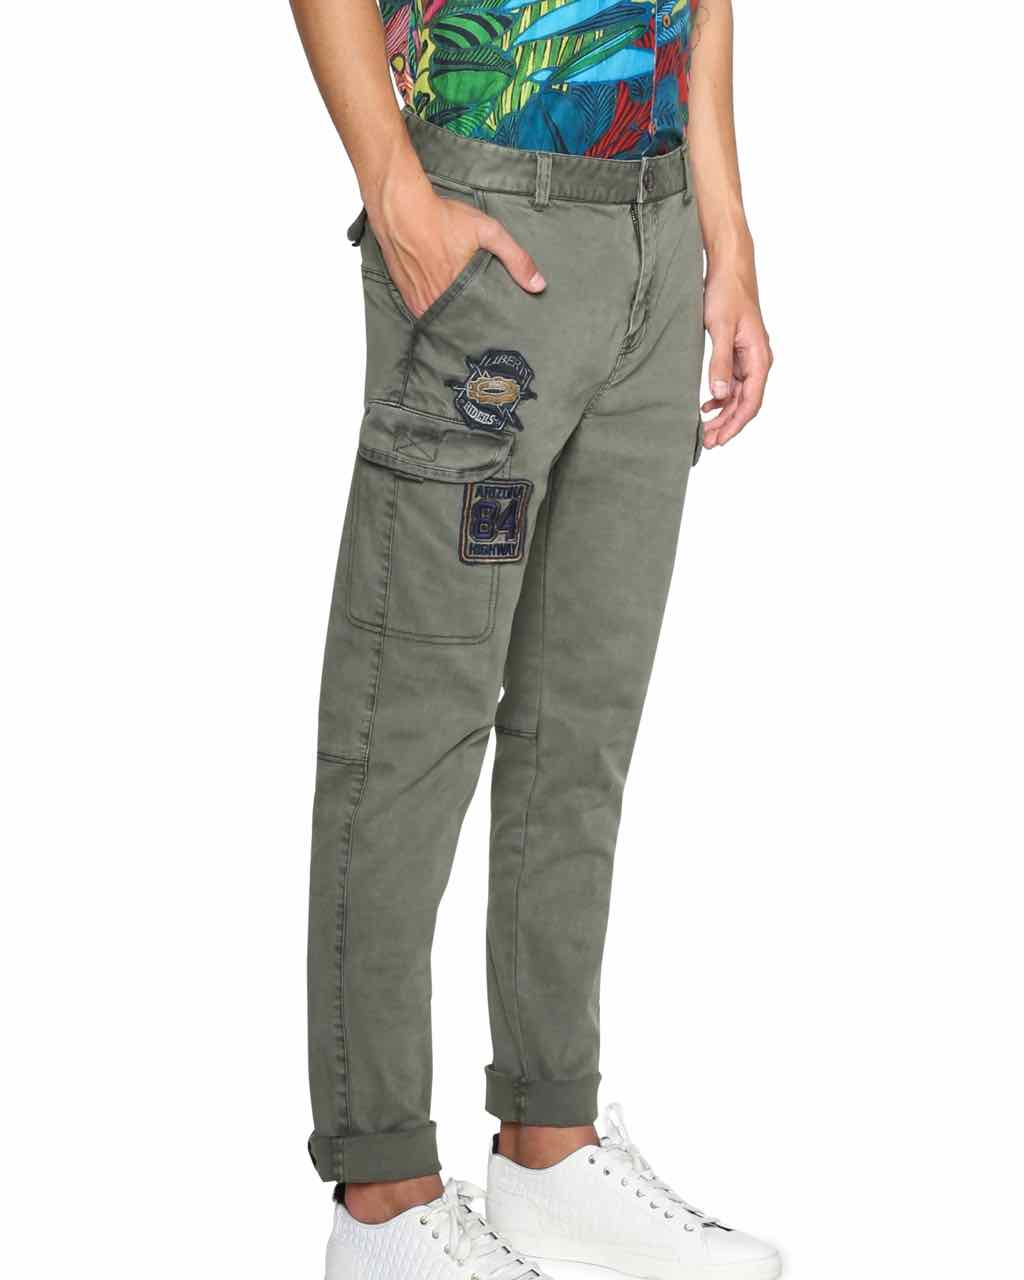 Desigual Men Pants with Embroidery